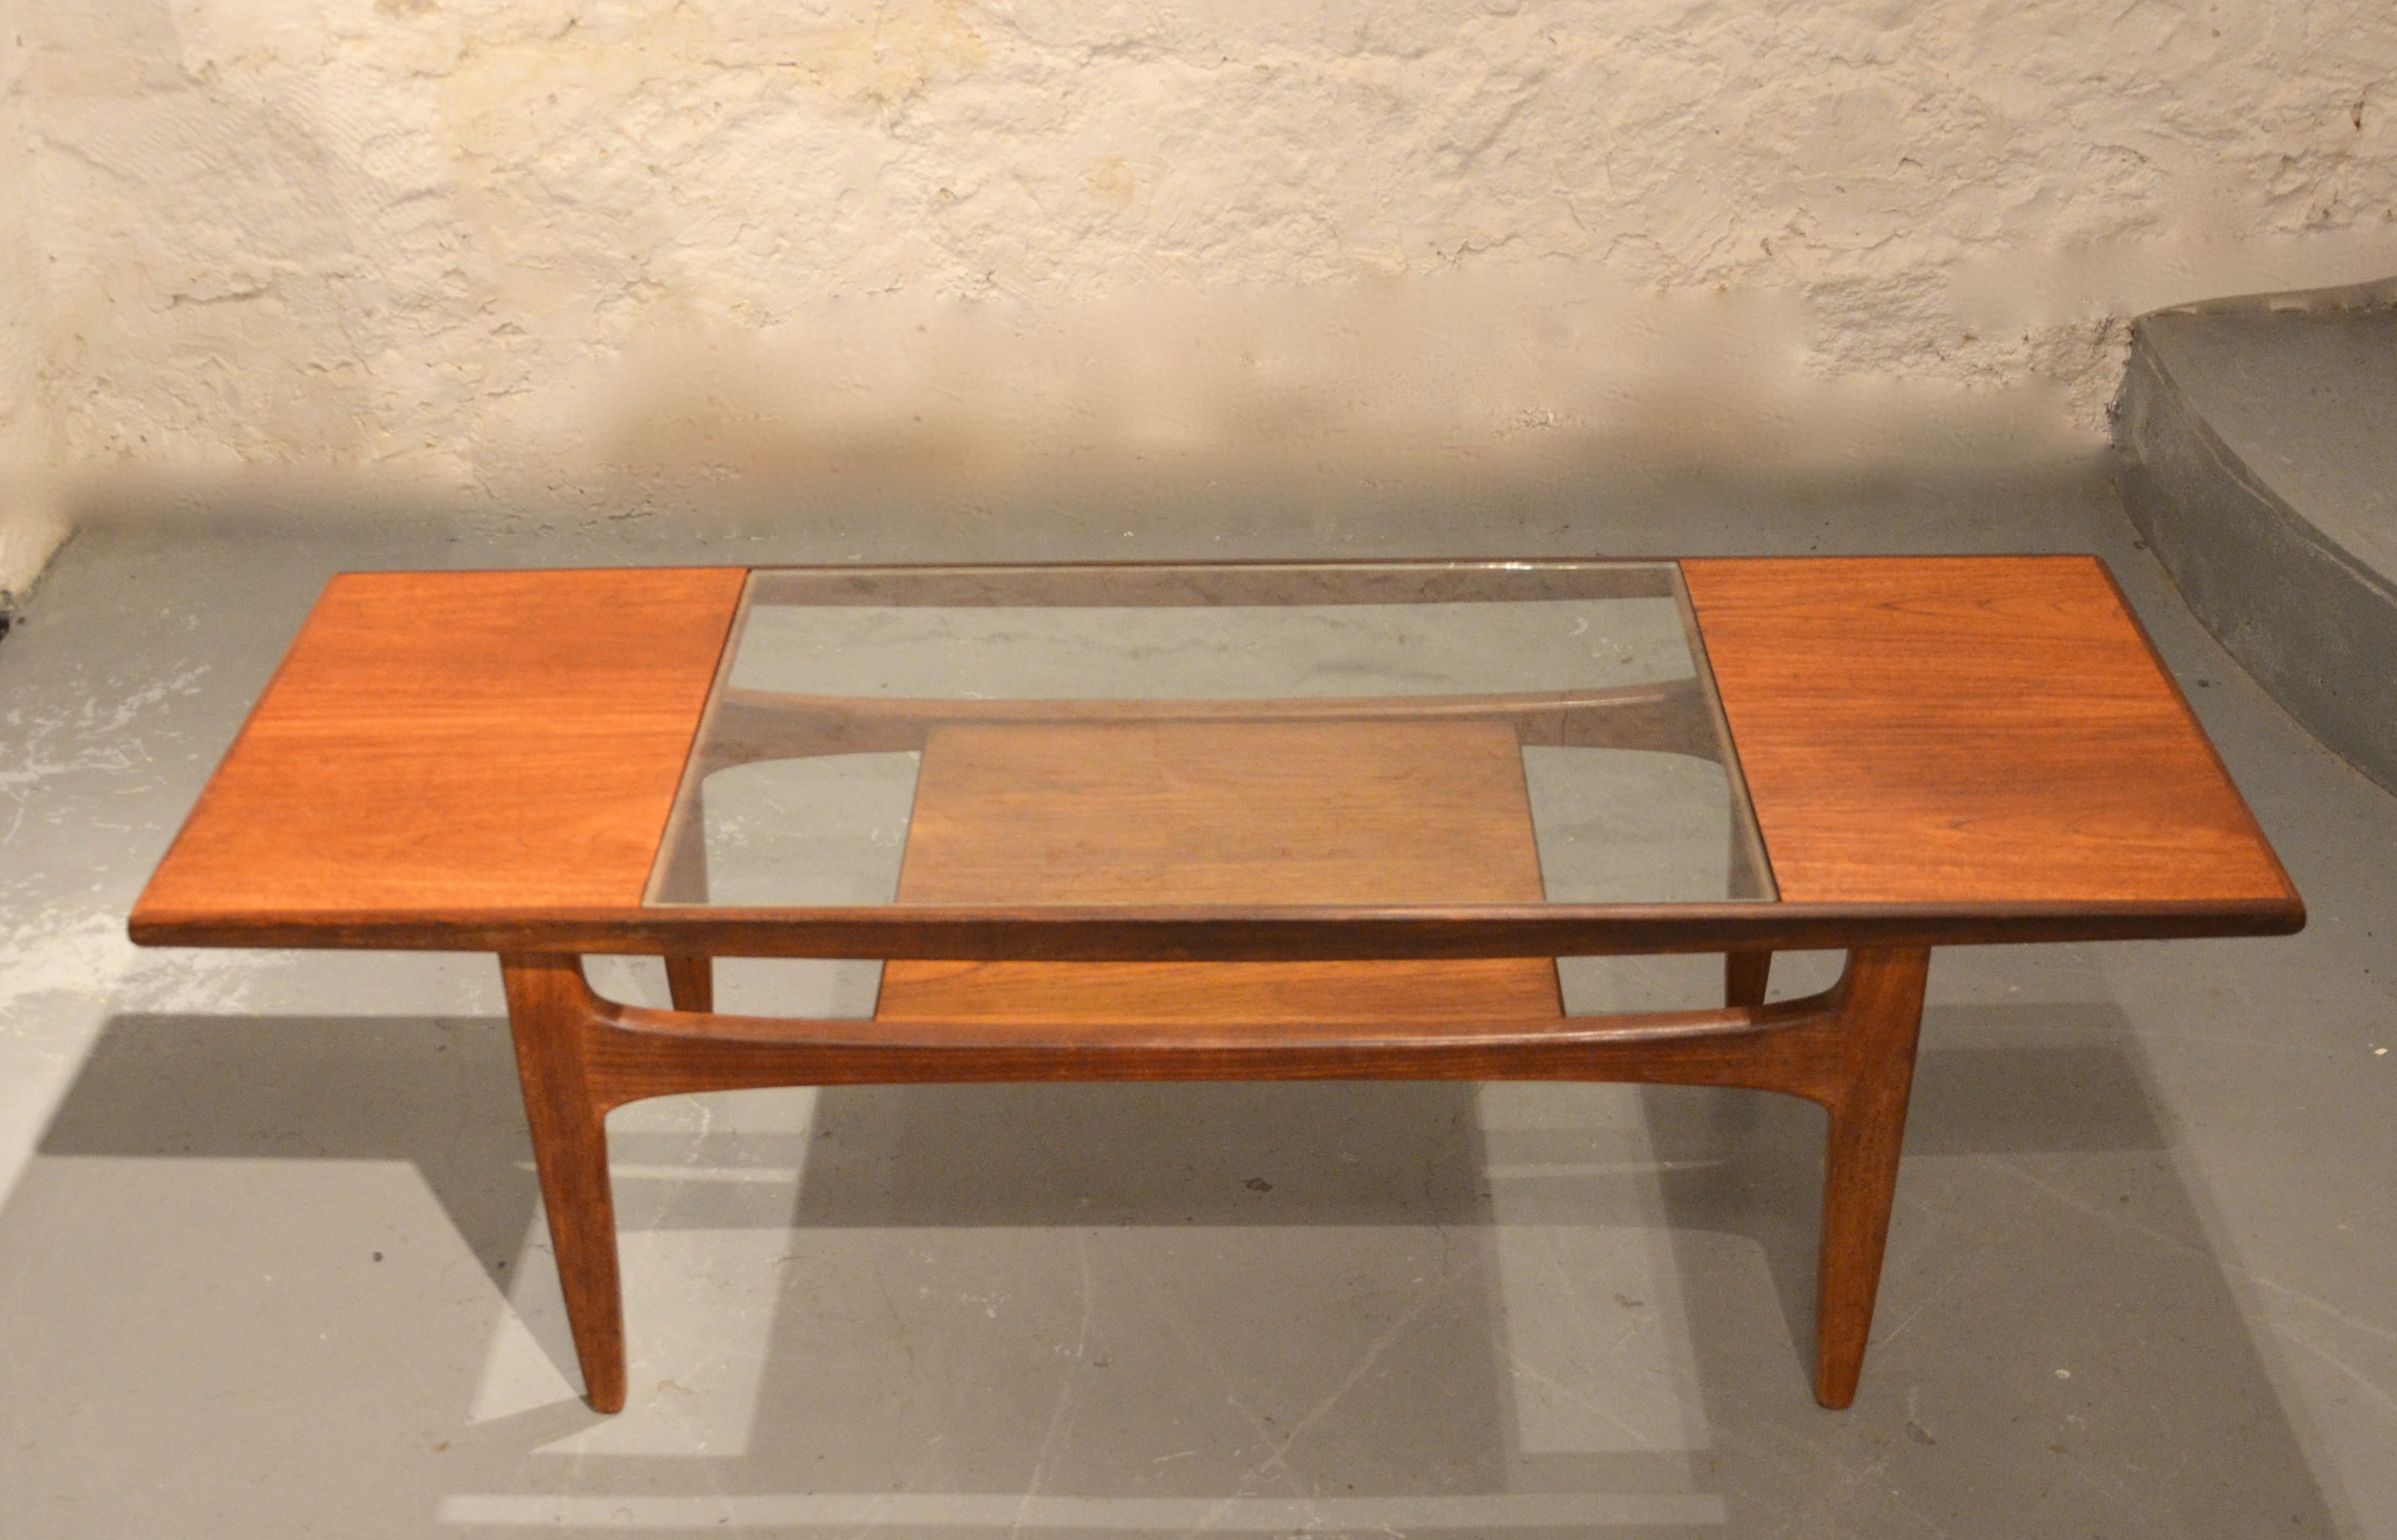 Table basse scandinave verre et teck bindies for Table scandinave verre